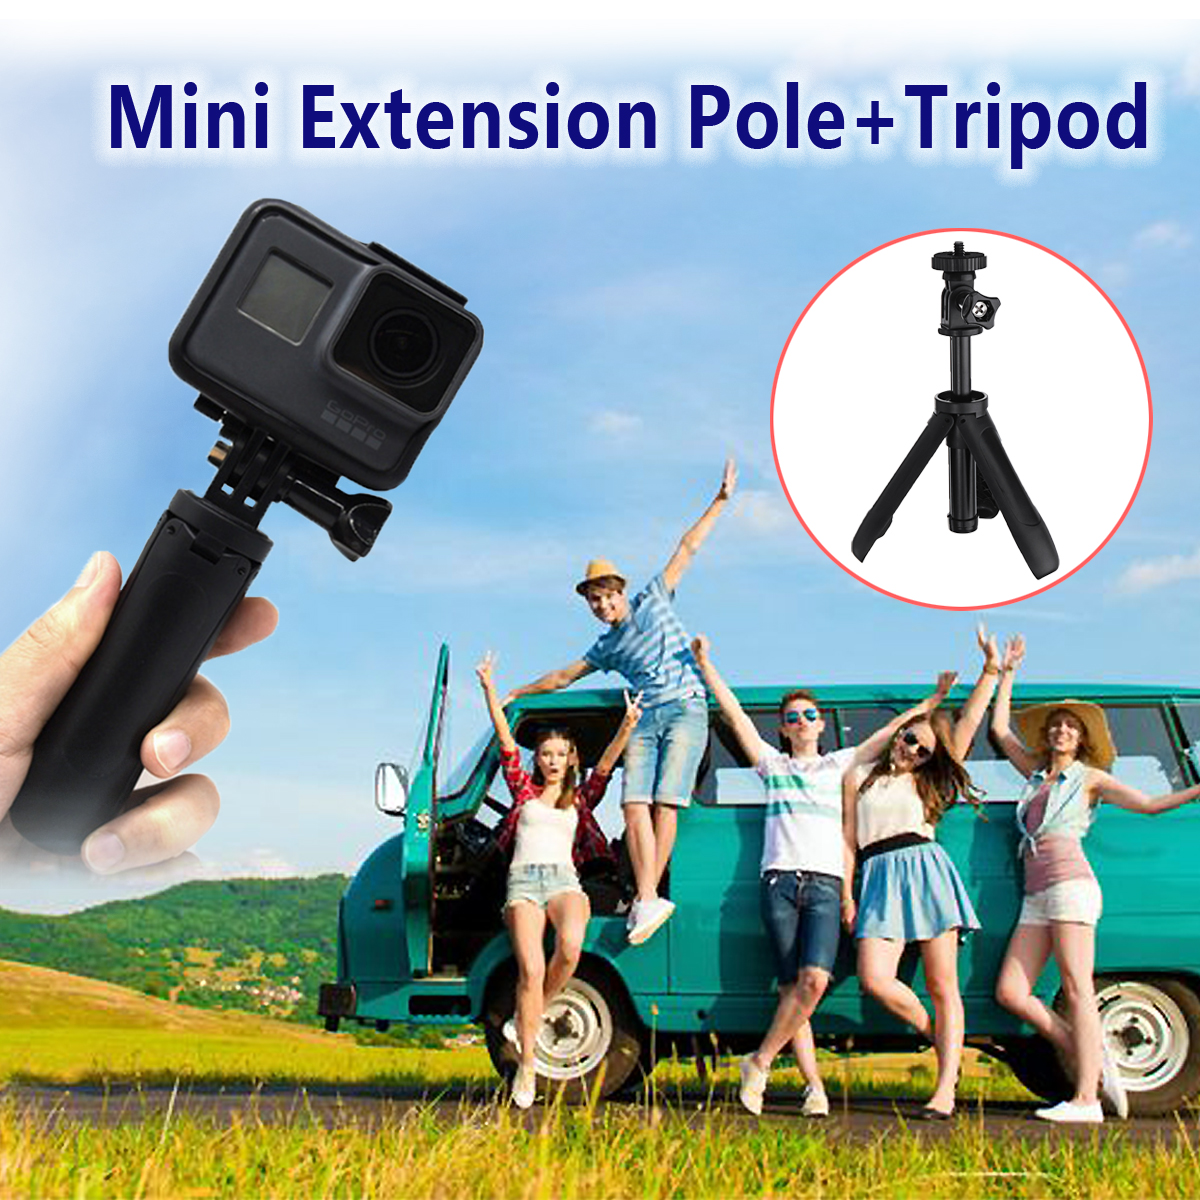 Mini Portable Tripods Shorty Handgrip Extension Pole Extendable Monopod Tripod Selfie Stick for iPhone for Gopro sports cameras sports camera gopro selfie extension stick 17 inch adjustable cnc aluminum extension magic arm mount kit for dslr lcd monitor